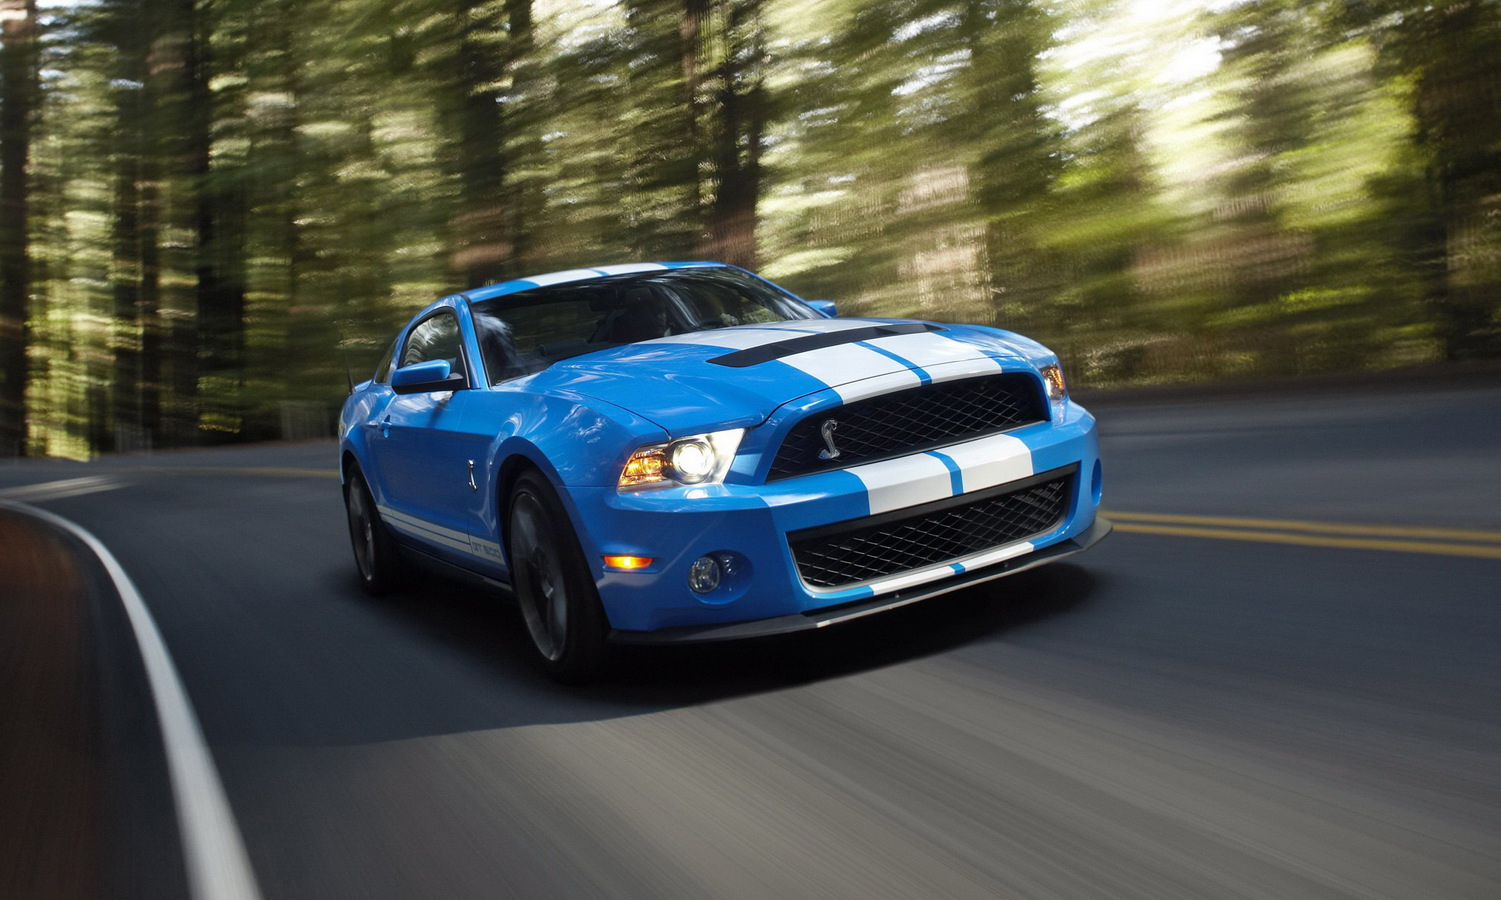 2010 Ford Shelby GT 500 #4